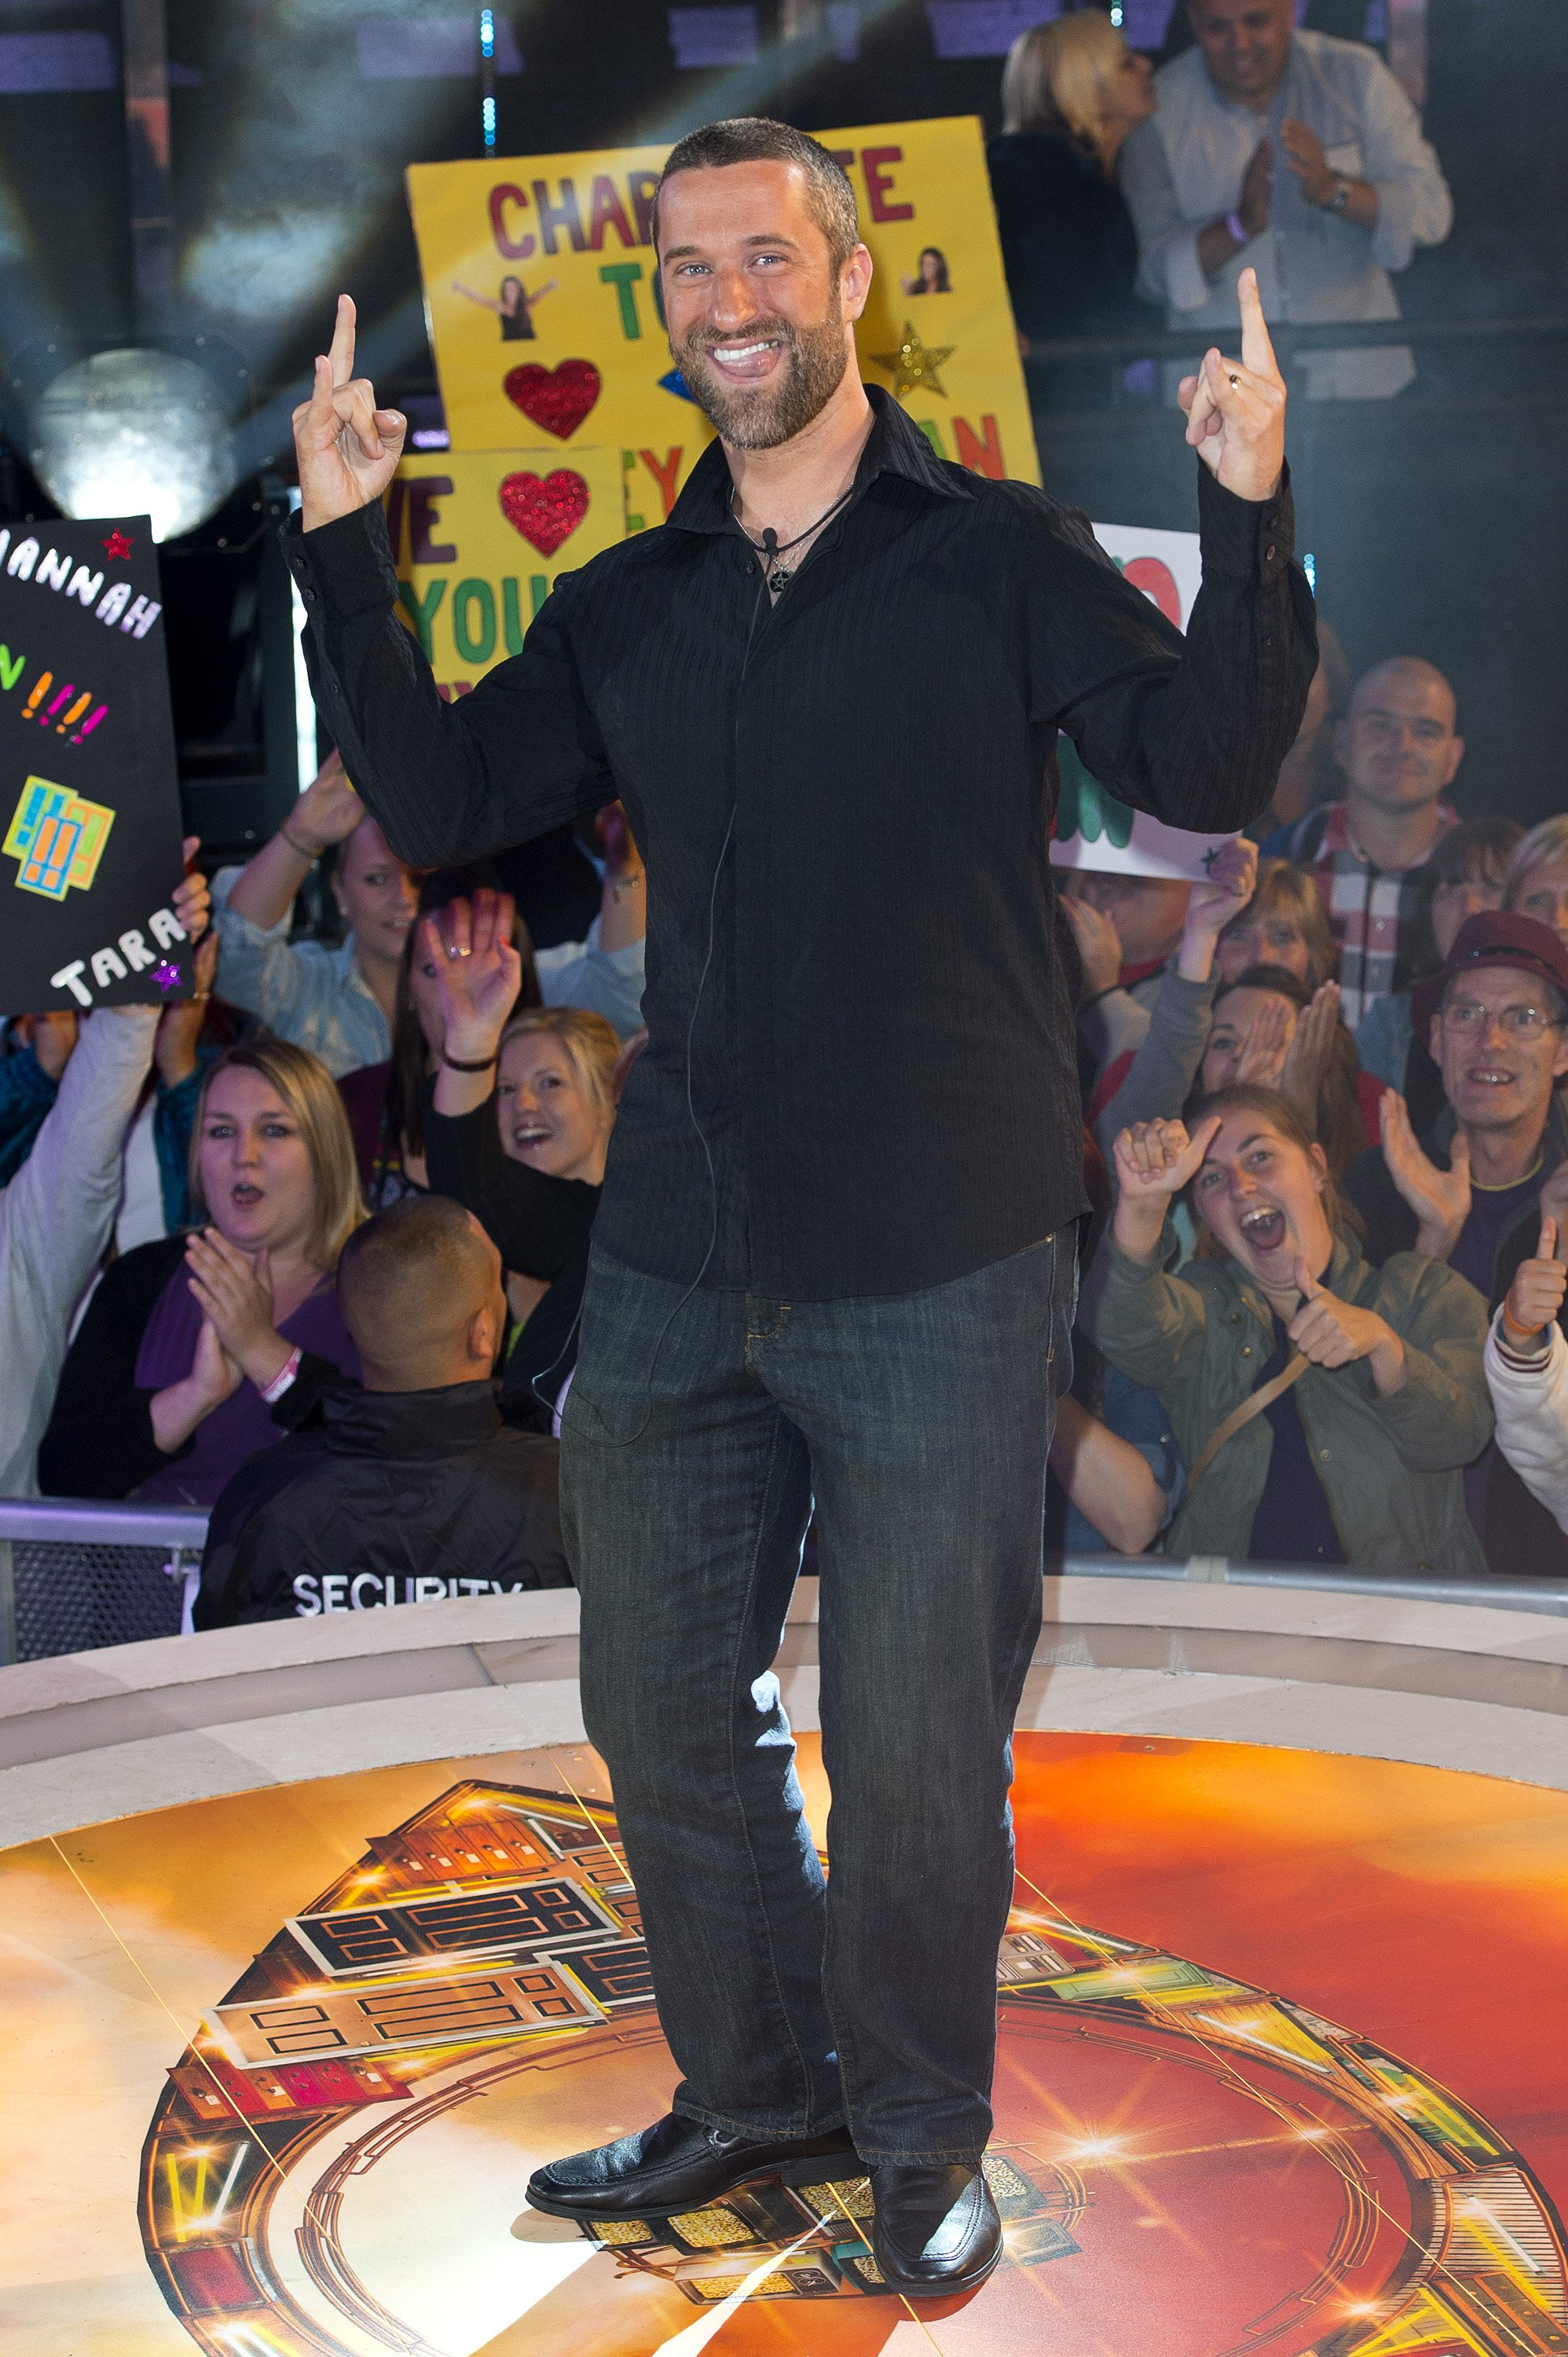 """Dustin Diamond at his eviction ceremony from """"The Celebrity Big Brother"""" house, England, September 2013 